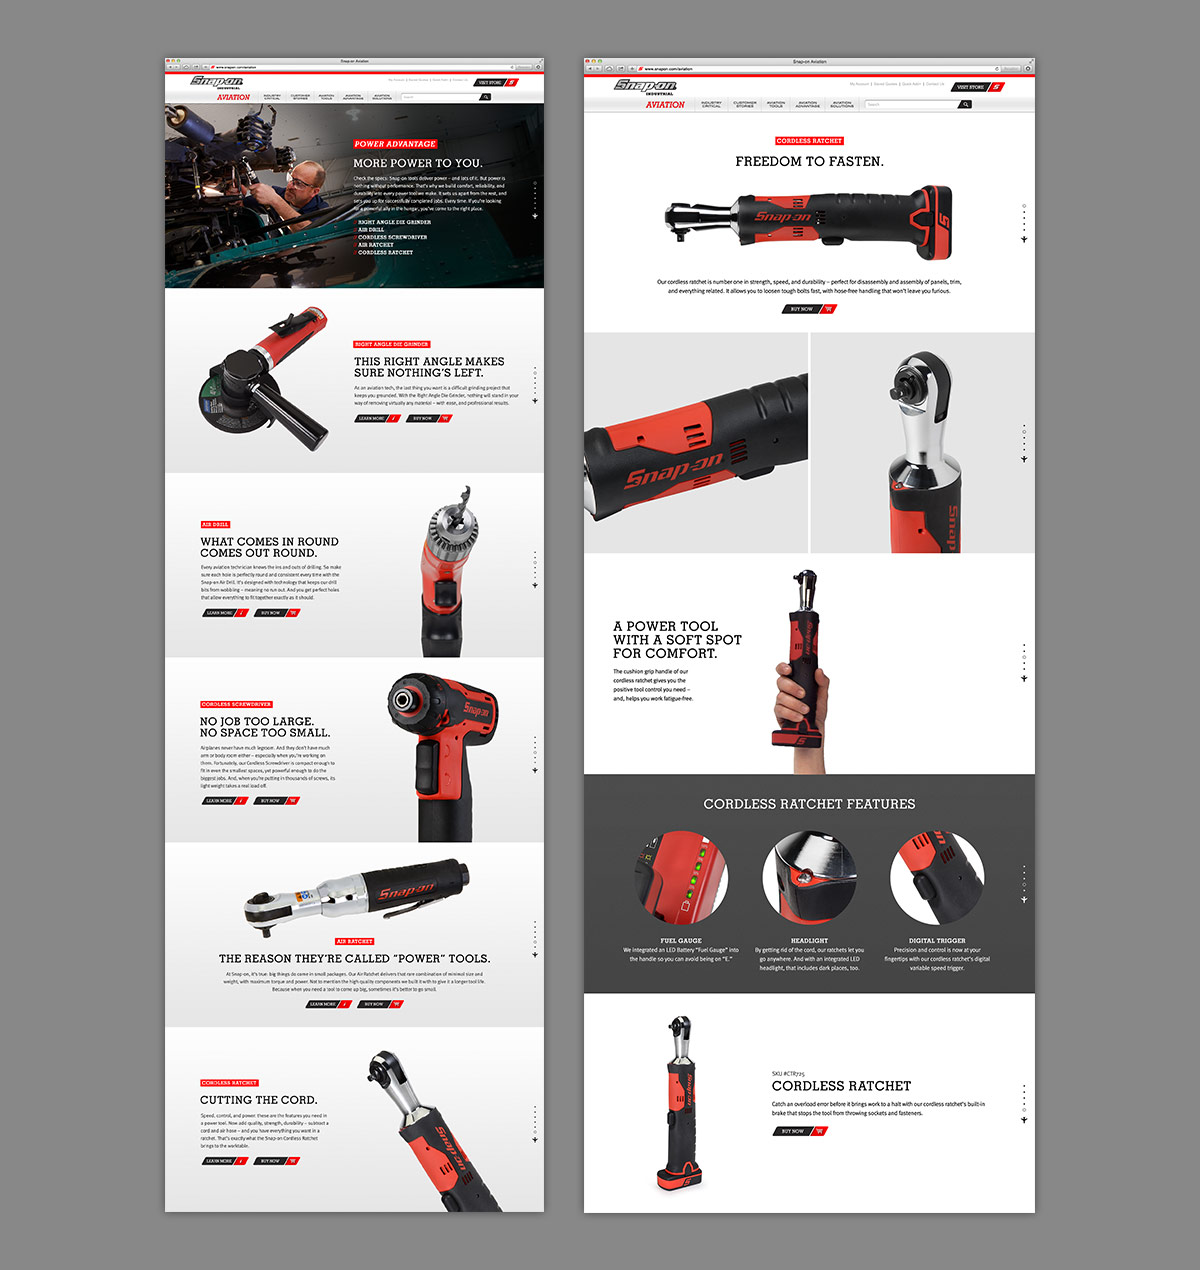 Snap-on-Pages-2.jpg